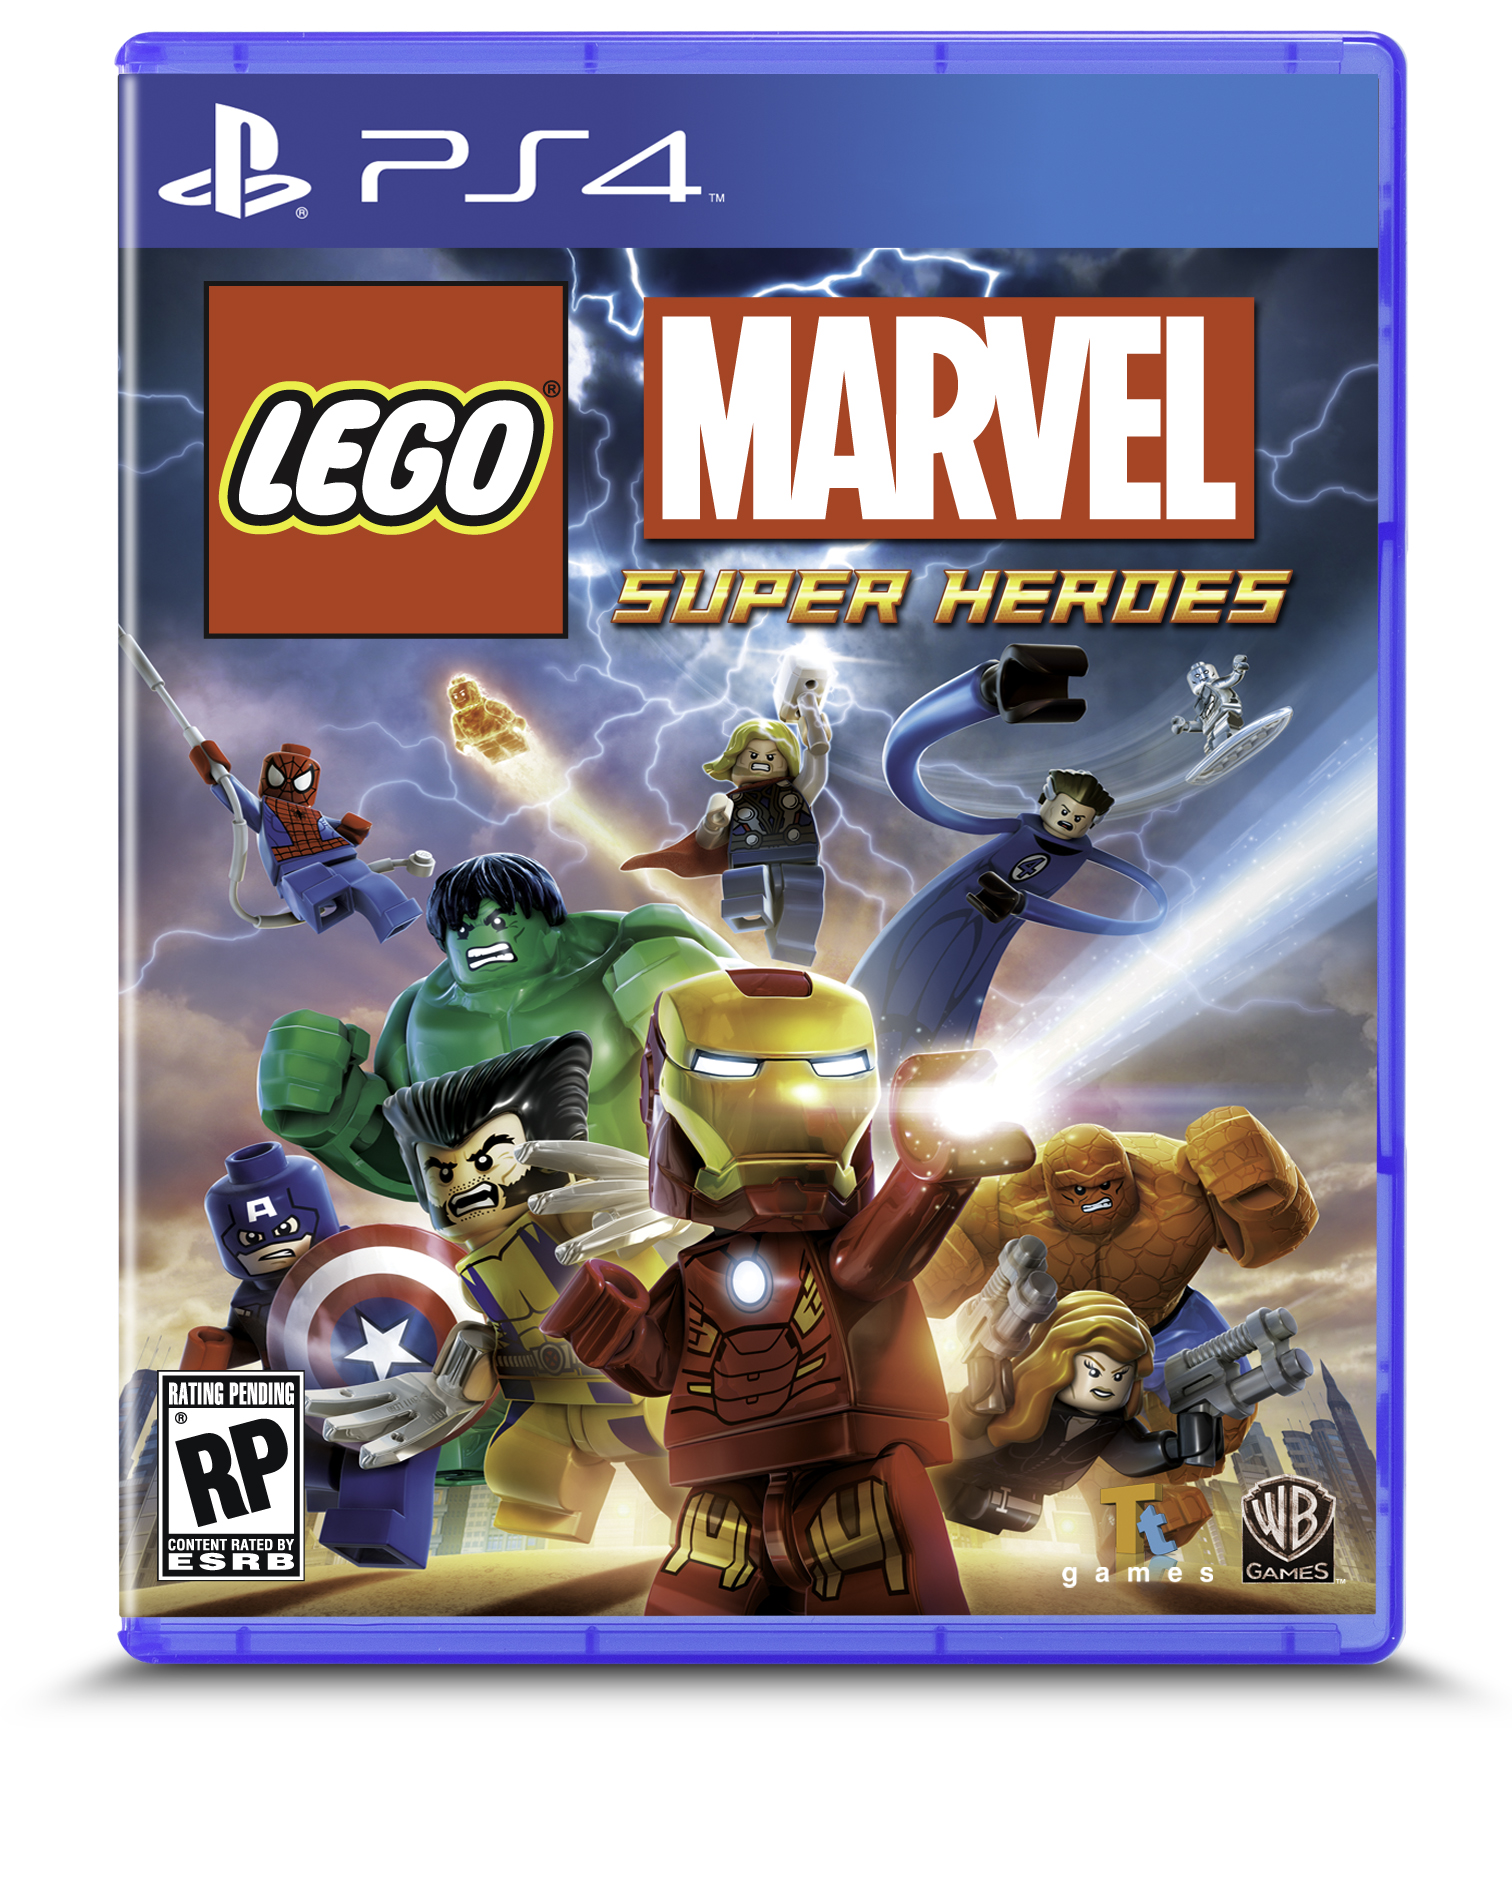 2013-10-14-lego_marvel_ps4.jpg